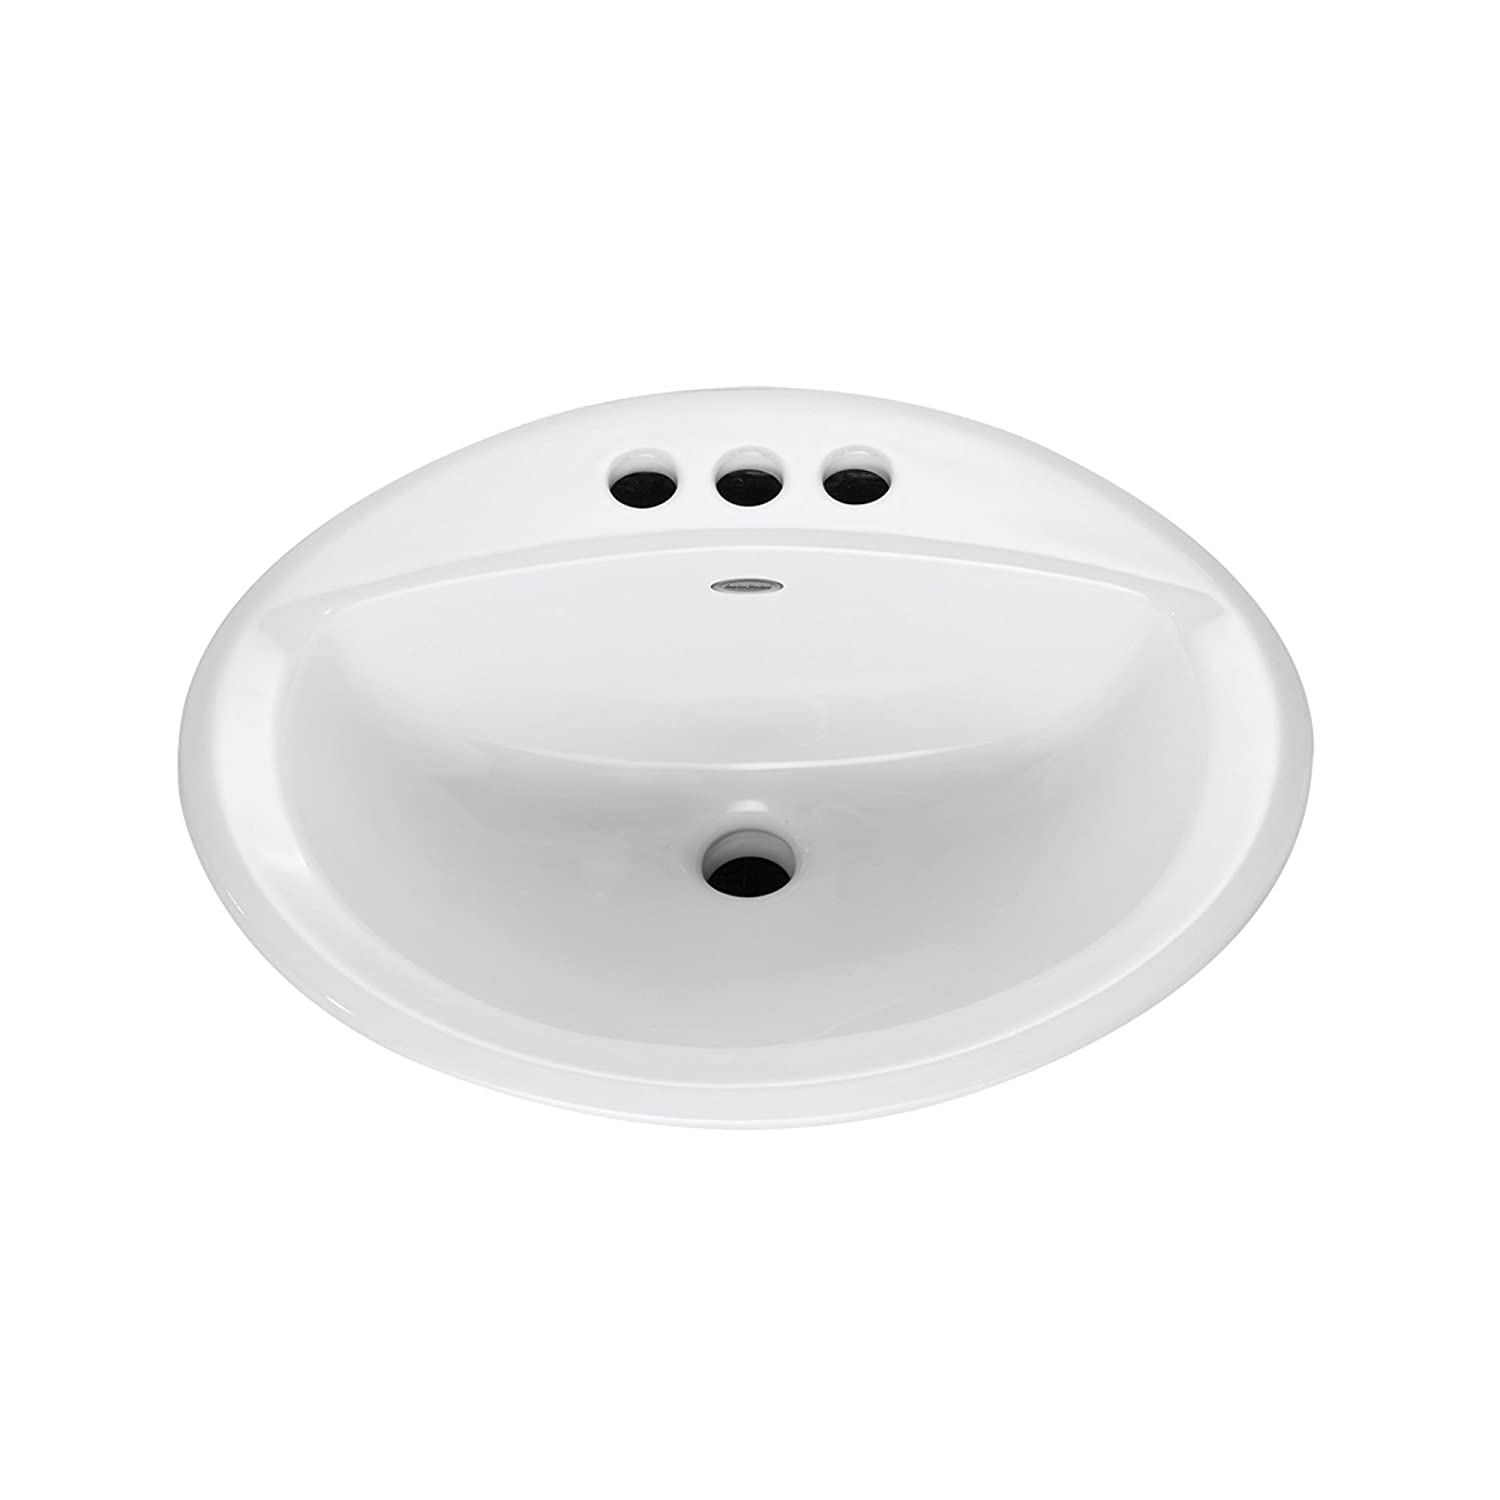 "American Standard 0476028.020 Aqualyn Drop-In Bathroom Sink, 7-5/8 In H X 20-3/8 In W X 17-3/8 In D, Vitreous China 16"" x 10"" White"